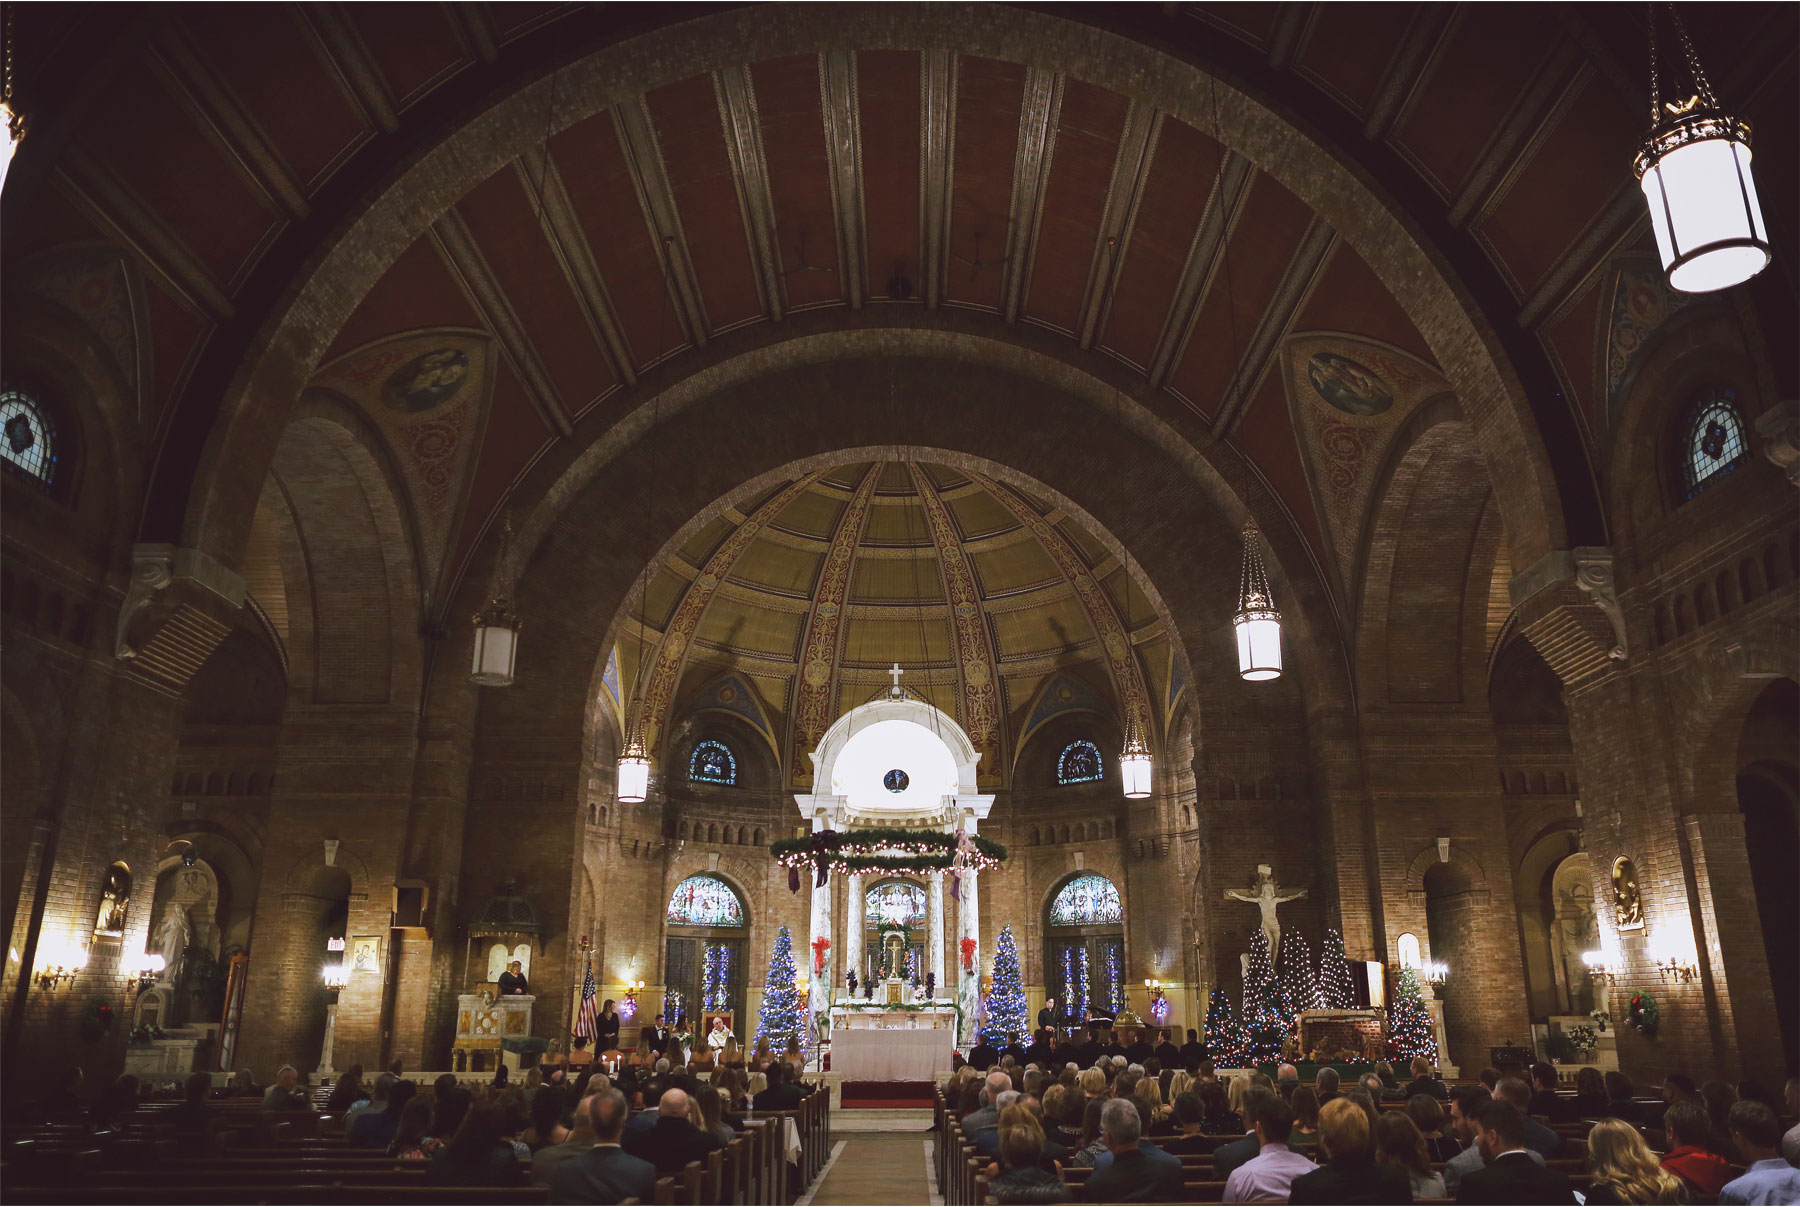 13-Minneapolis-Minnesota-Wedding-Photographer-by-Vick-Photography-Church-of-Incarnation-Ceremony-Maggie-and-Matt.jpg